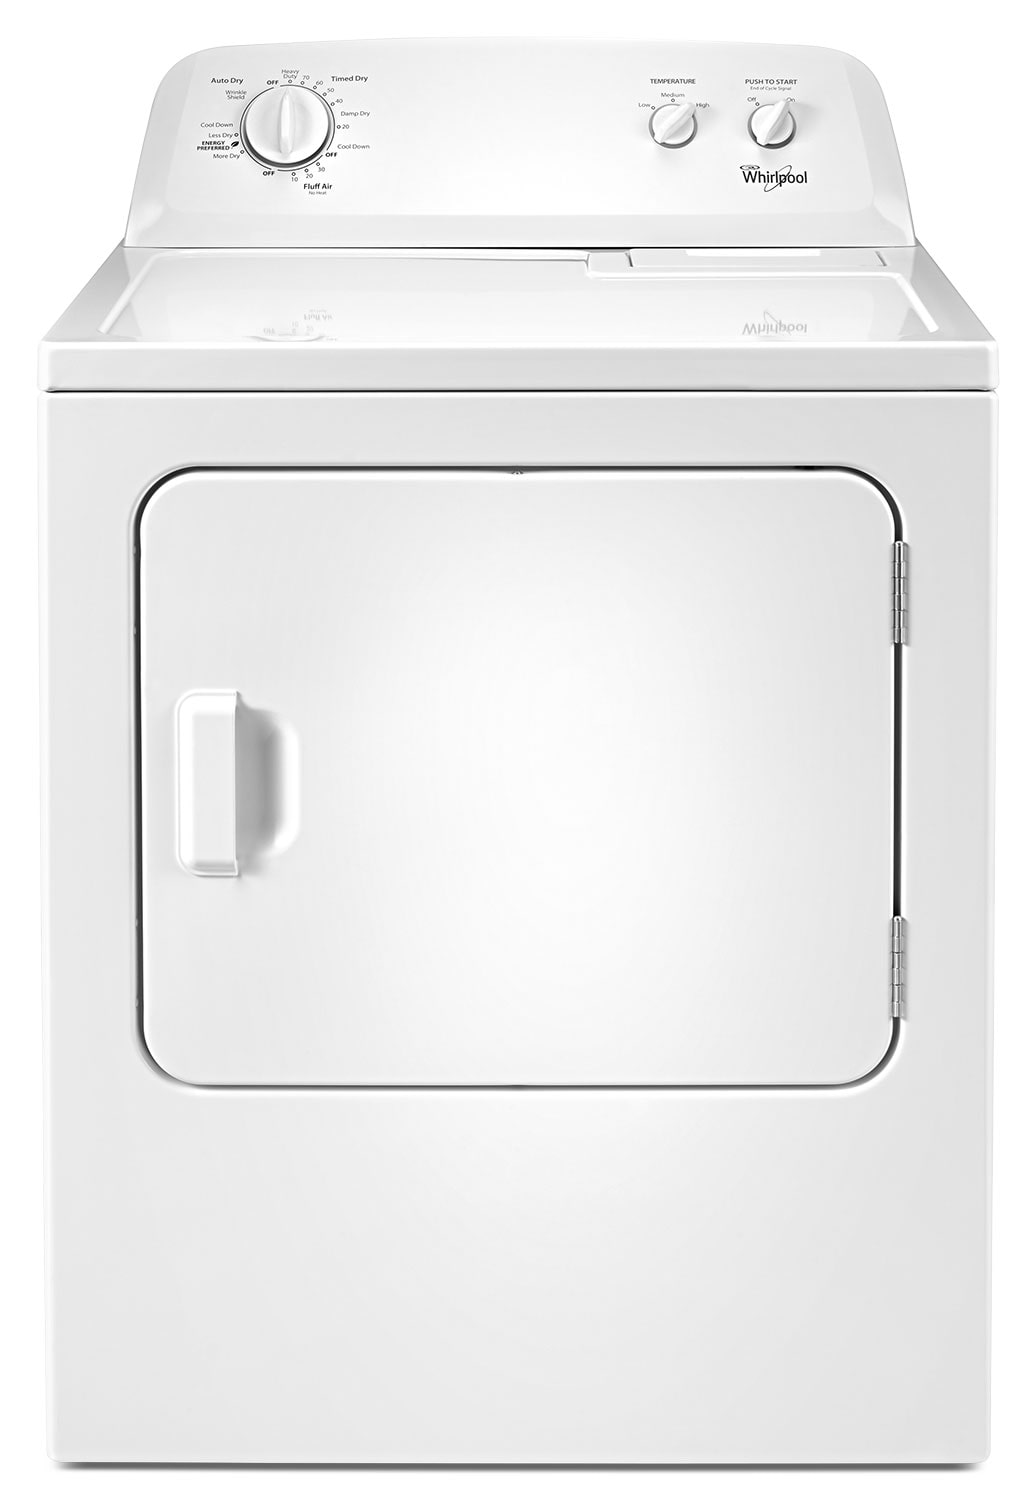 Whirlpool White Electric Dryer (7.0 Cu. Ft.) - YWED4616FW